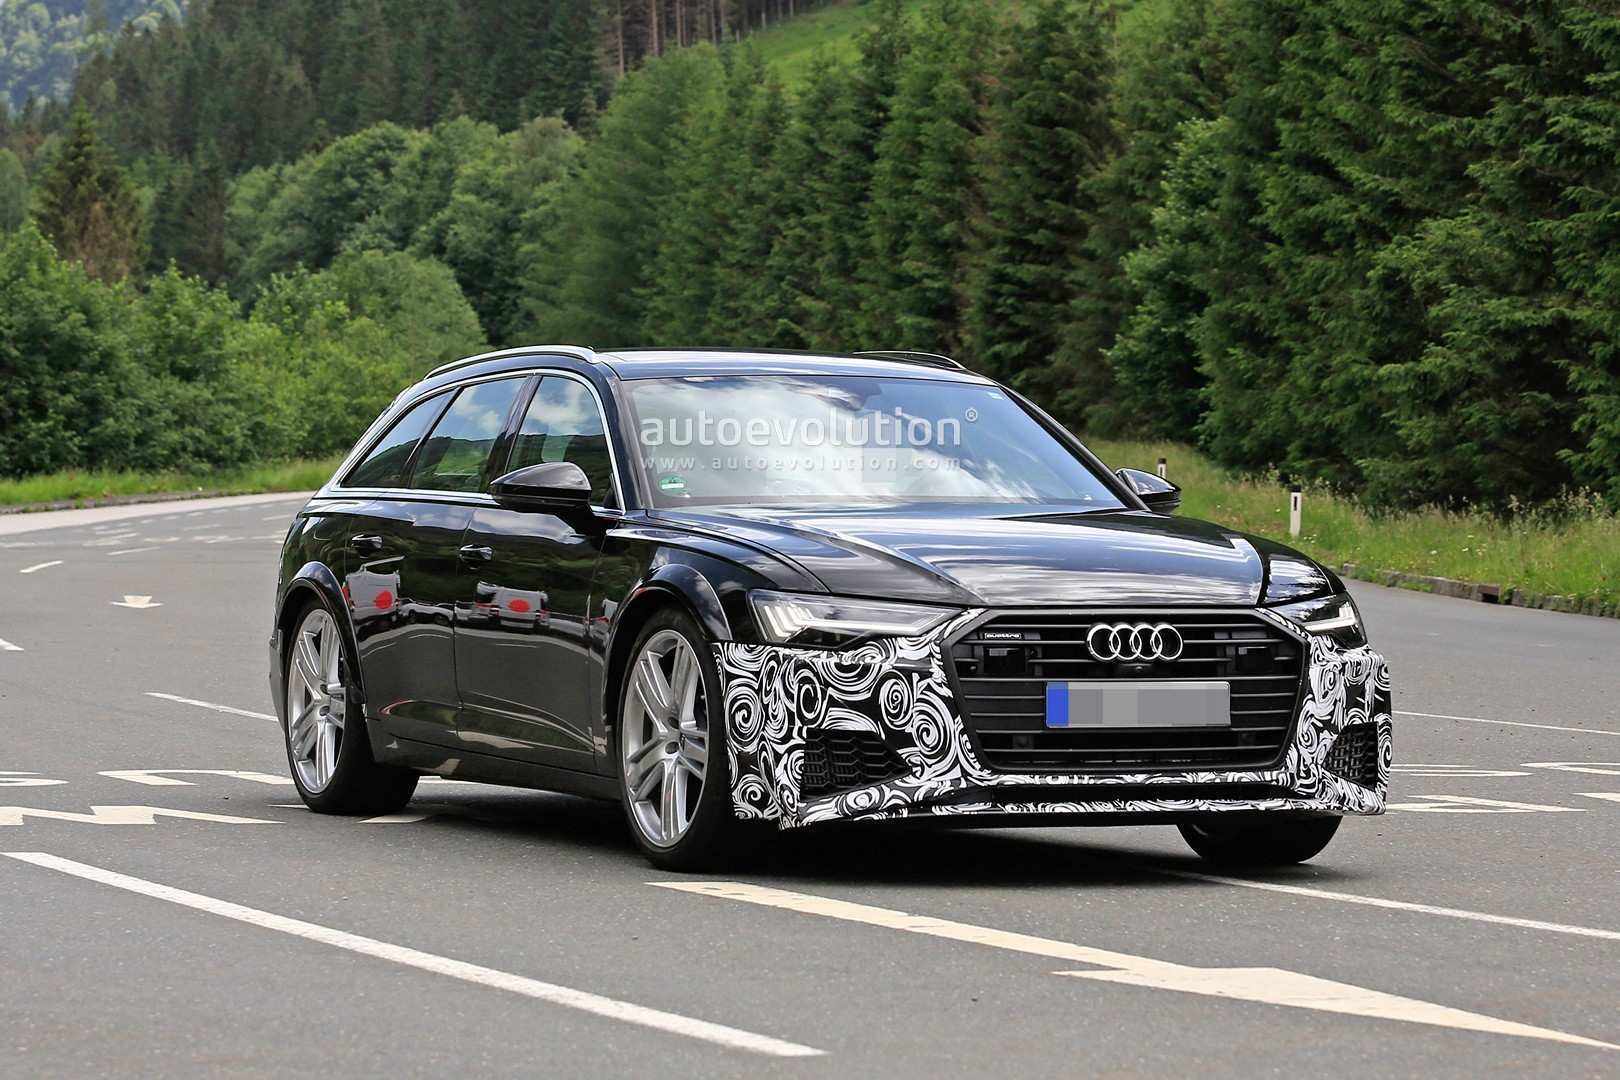 68 New 2020 Audi Rs7 Spy Shoot for 2020 Audi Rs7